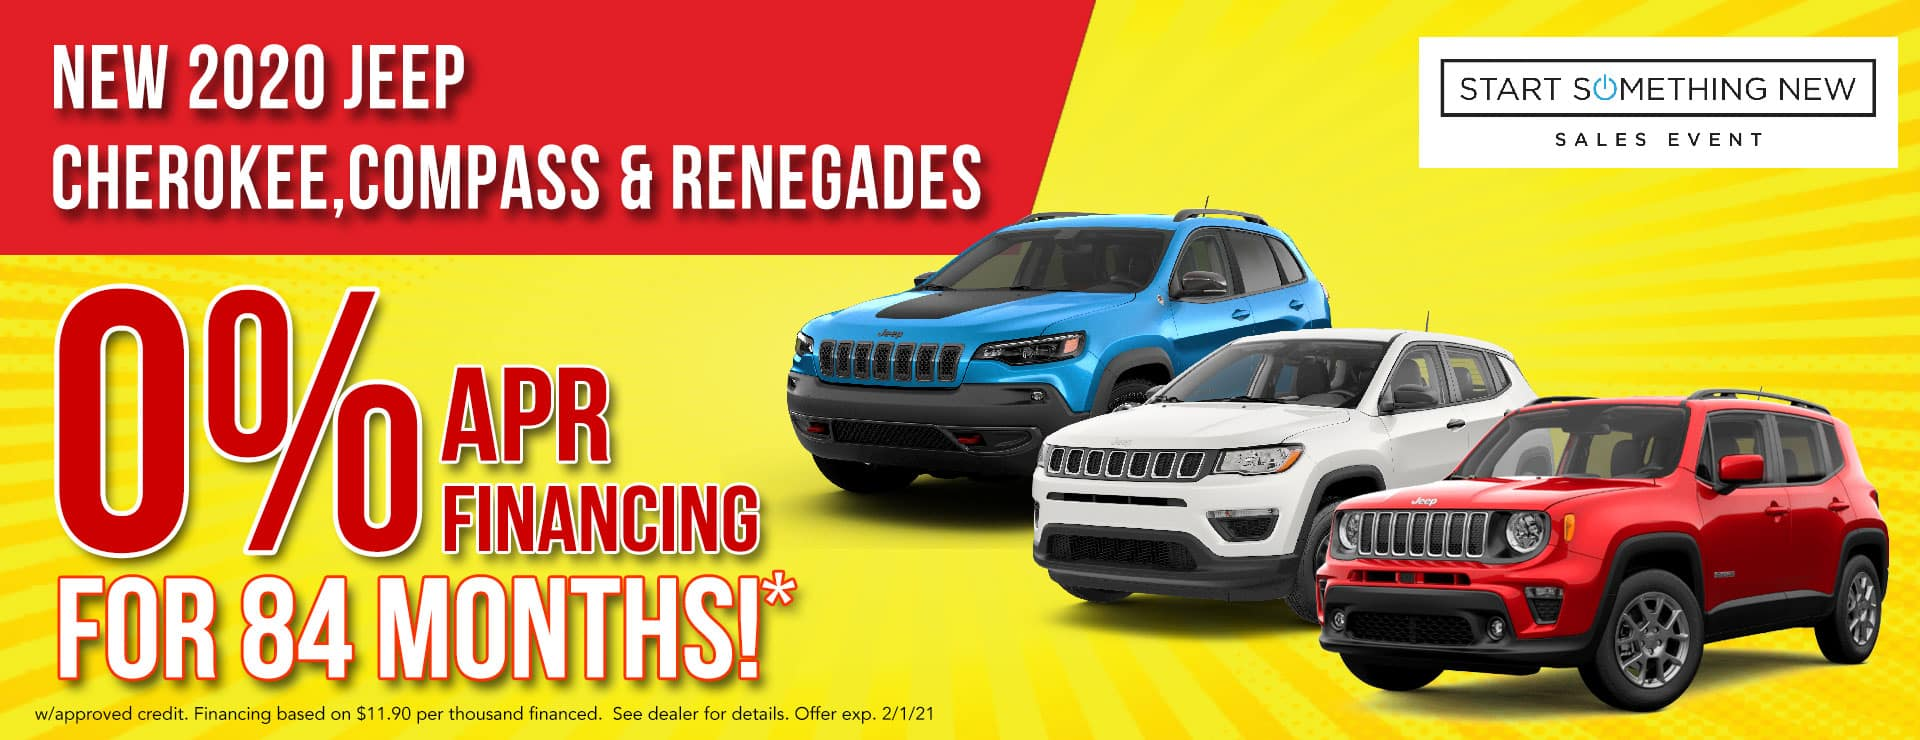 jeep offers